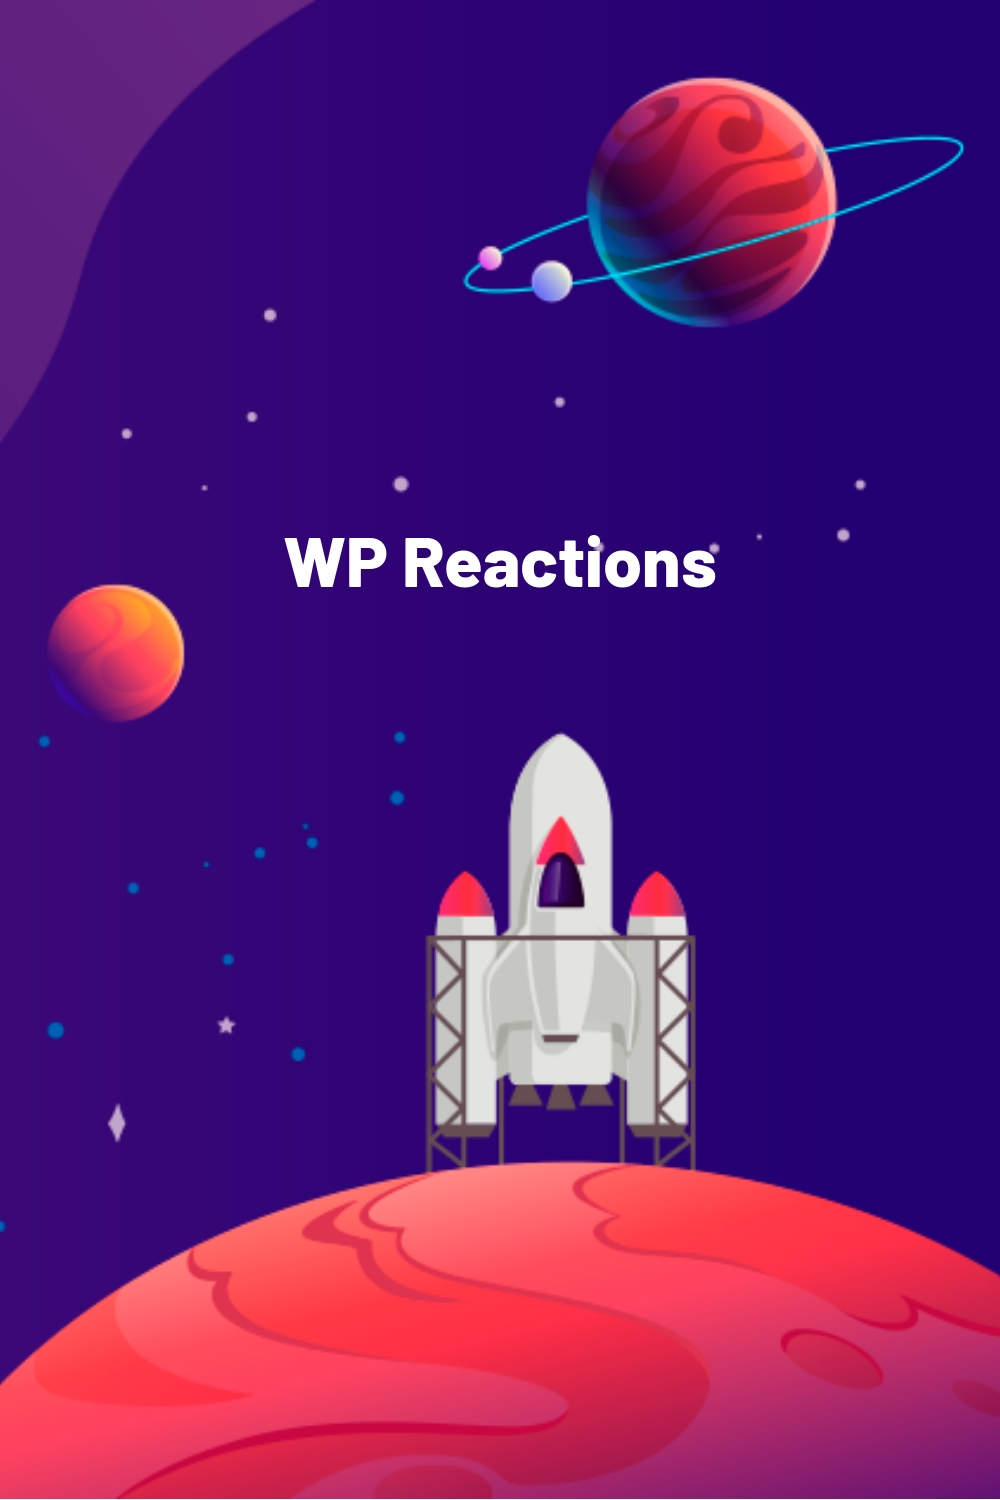 WP Reactions